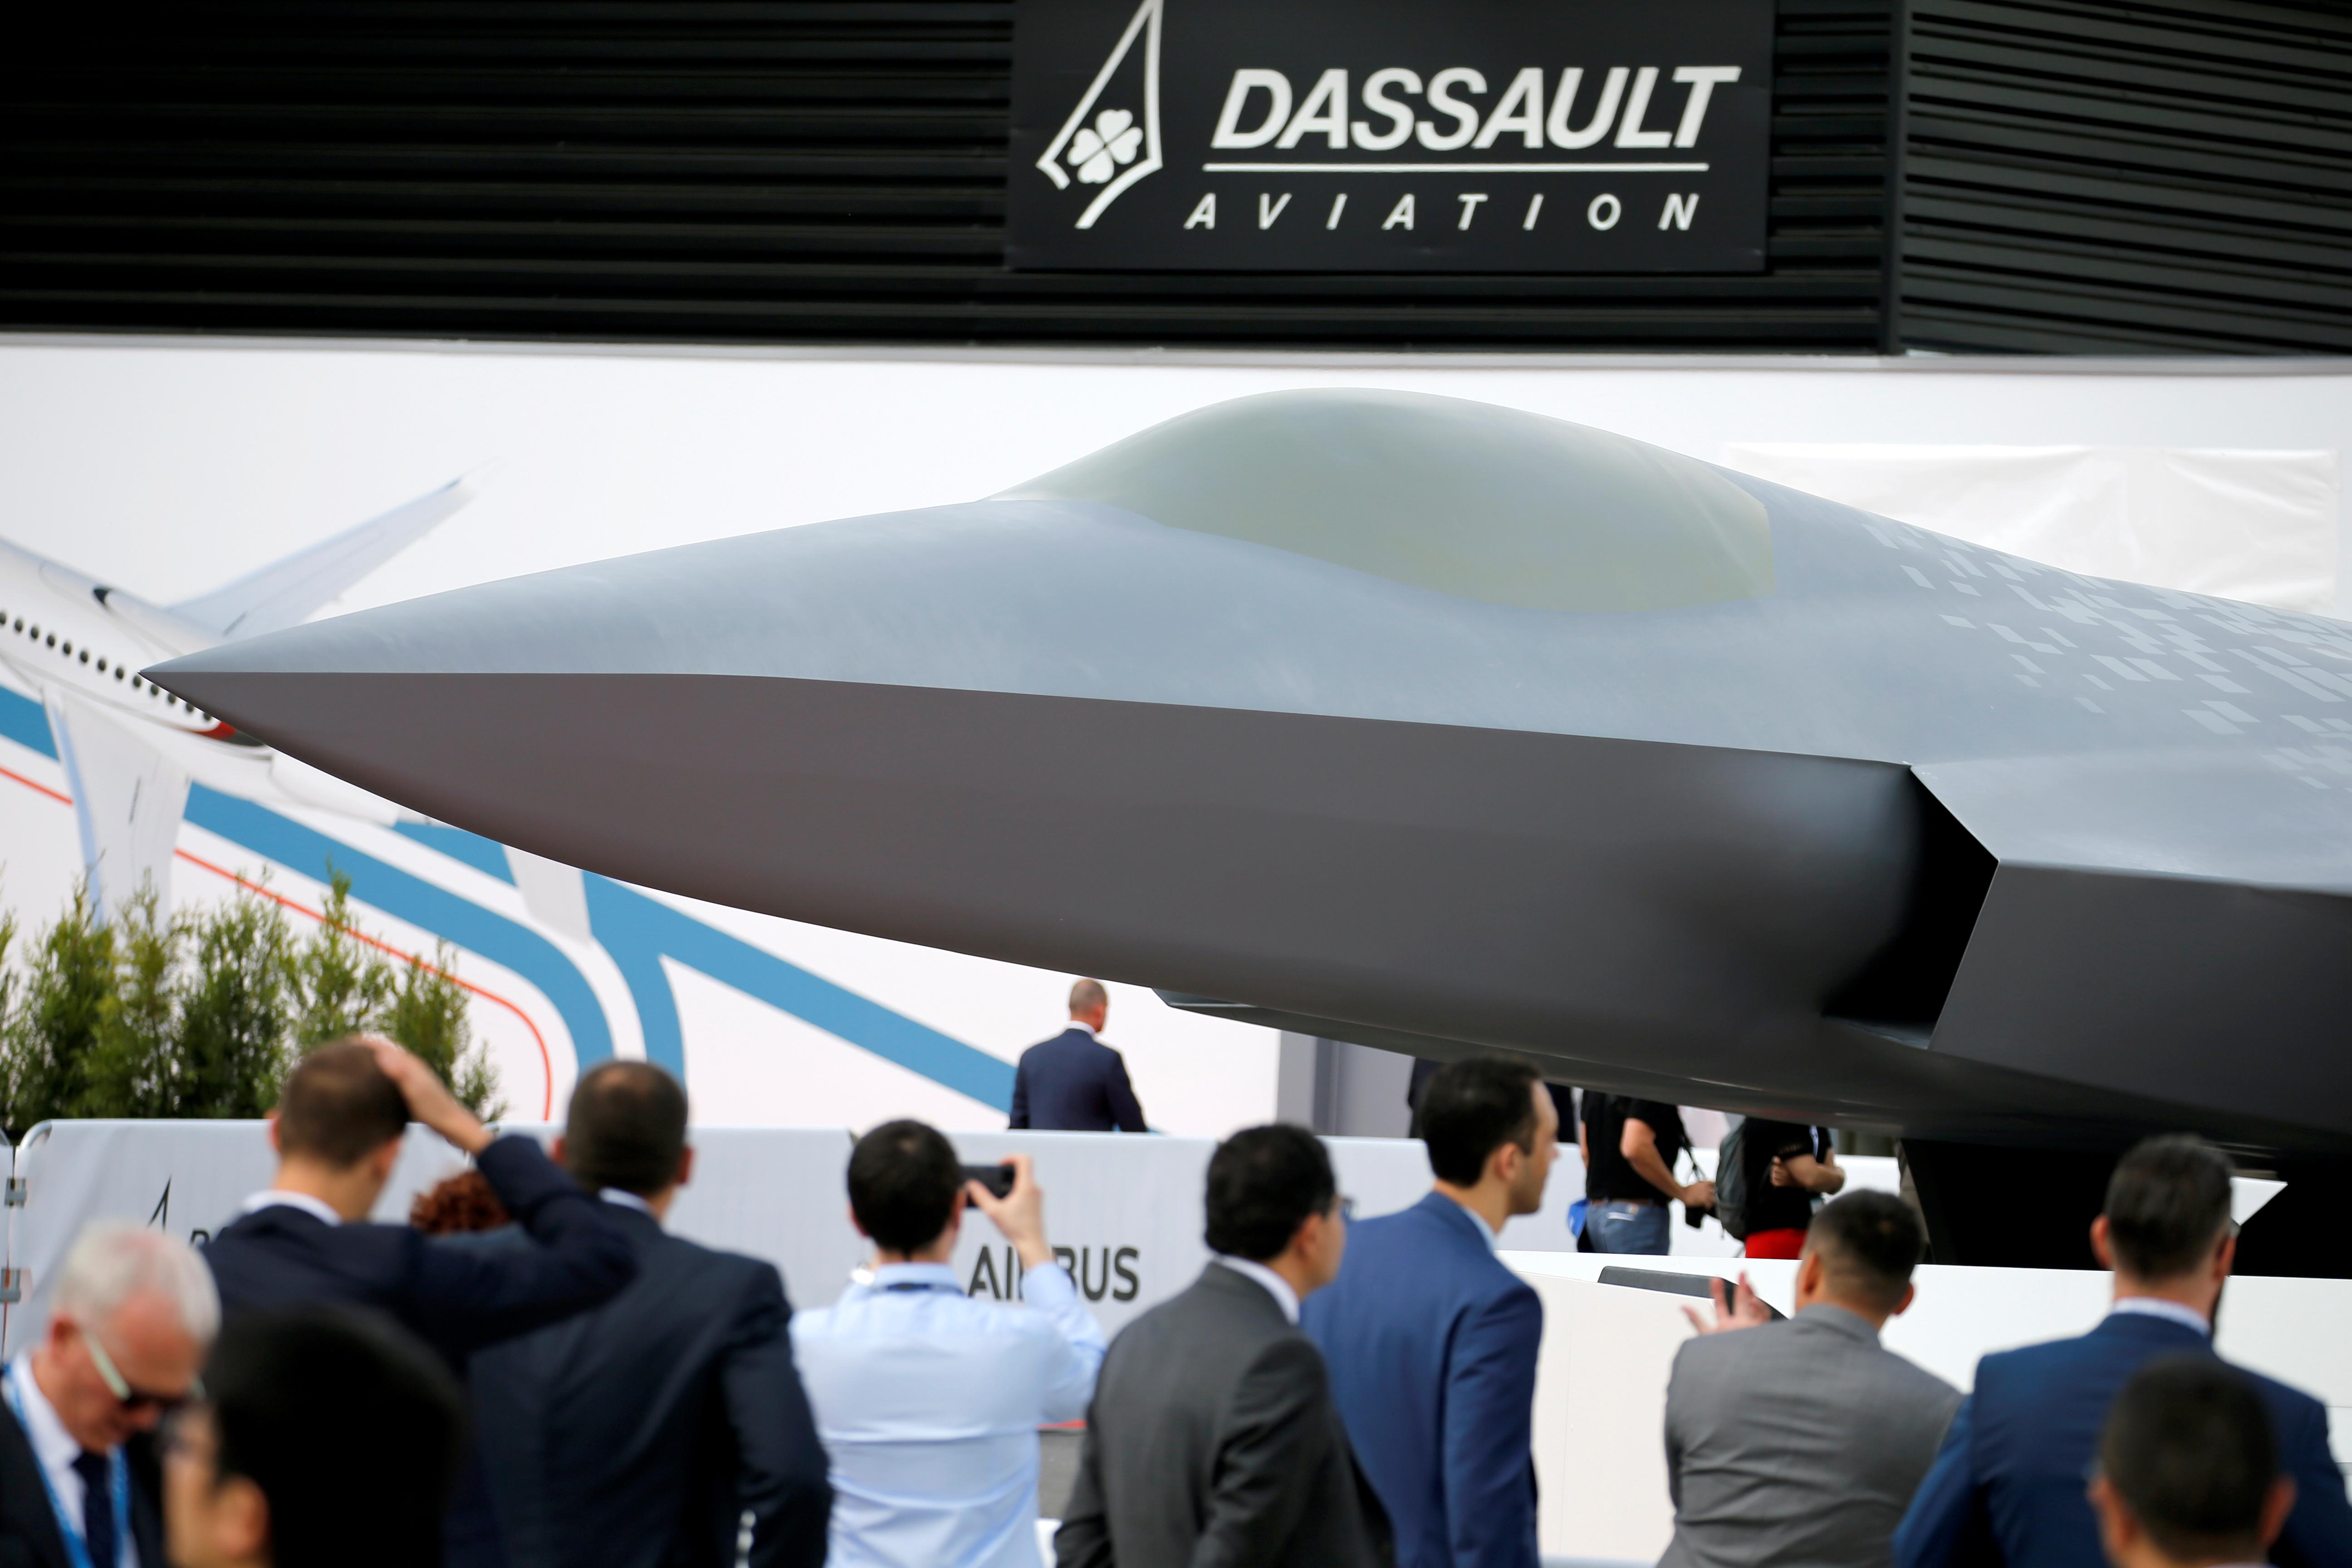 Spain joins France and Germany in race to build Europe's next combat jet